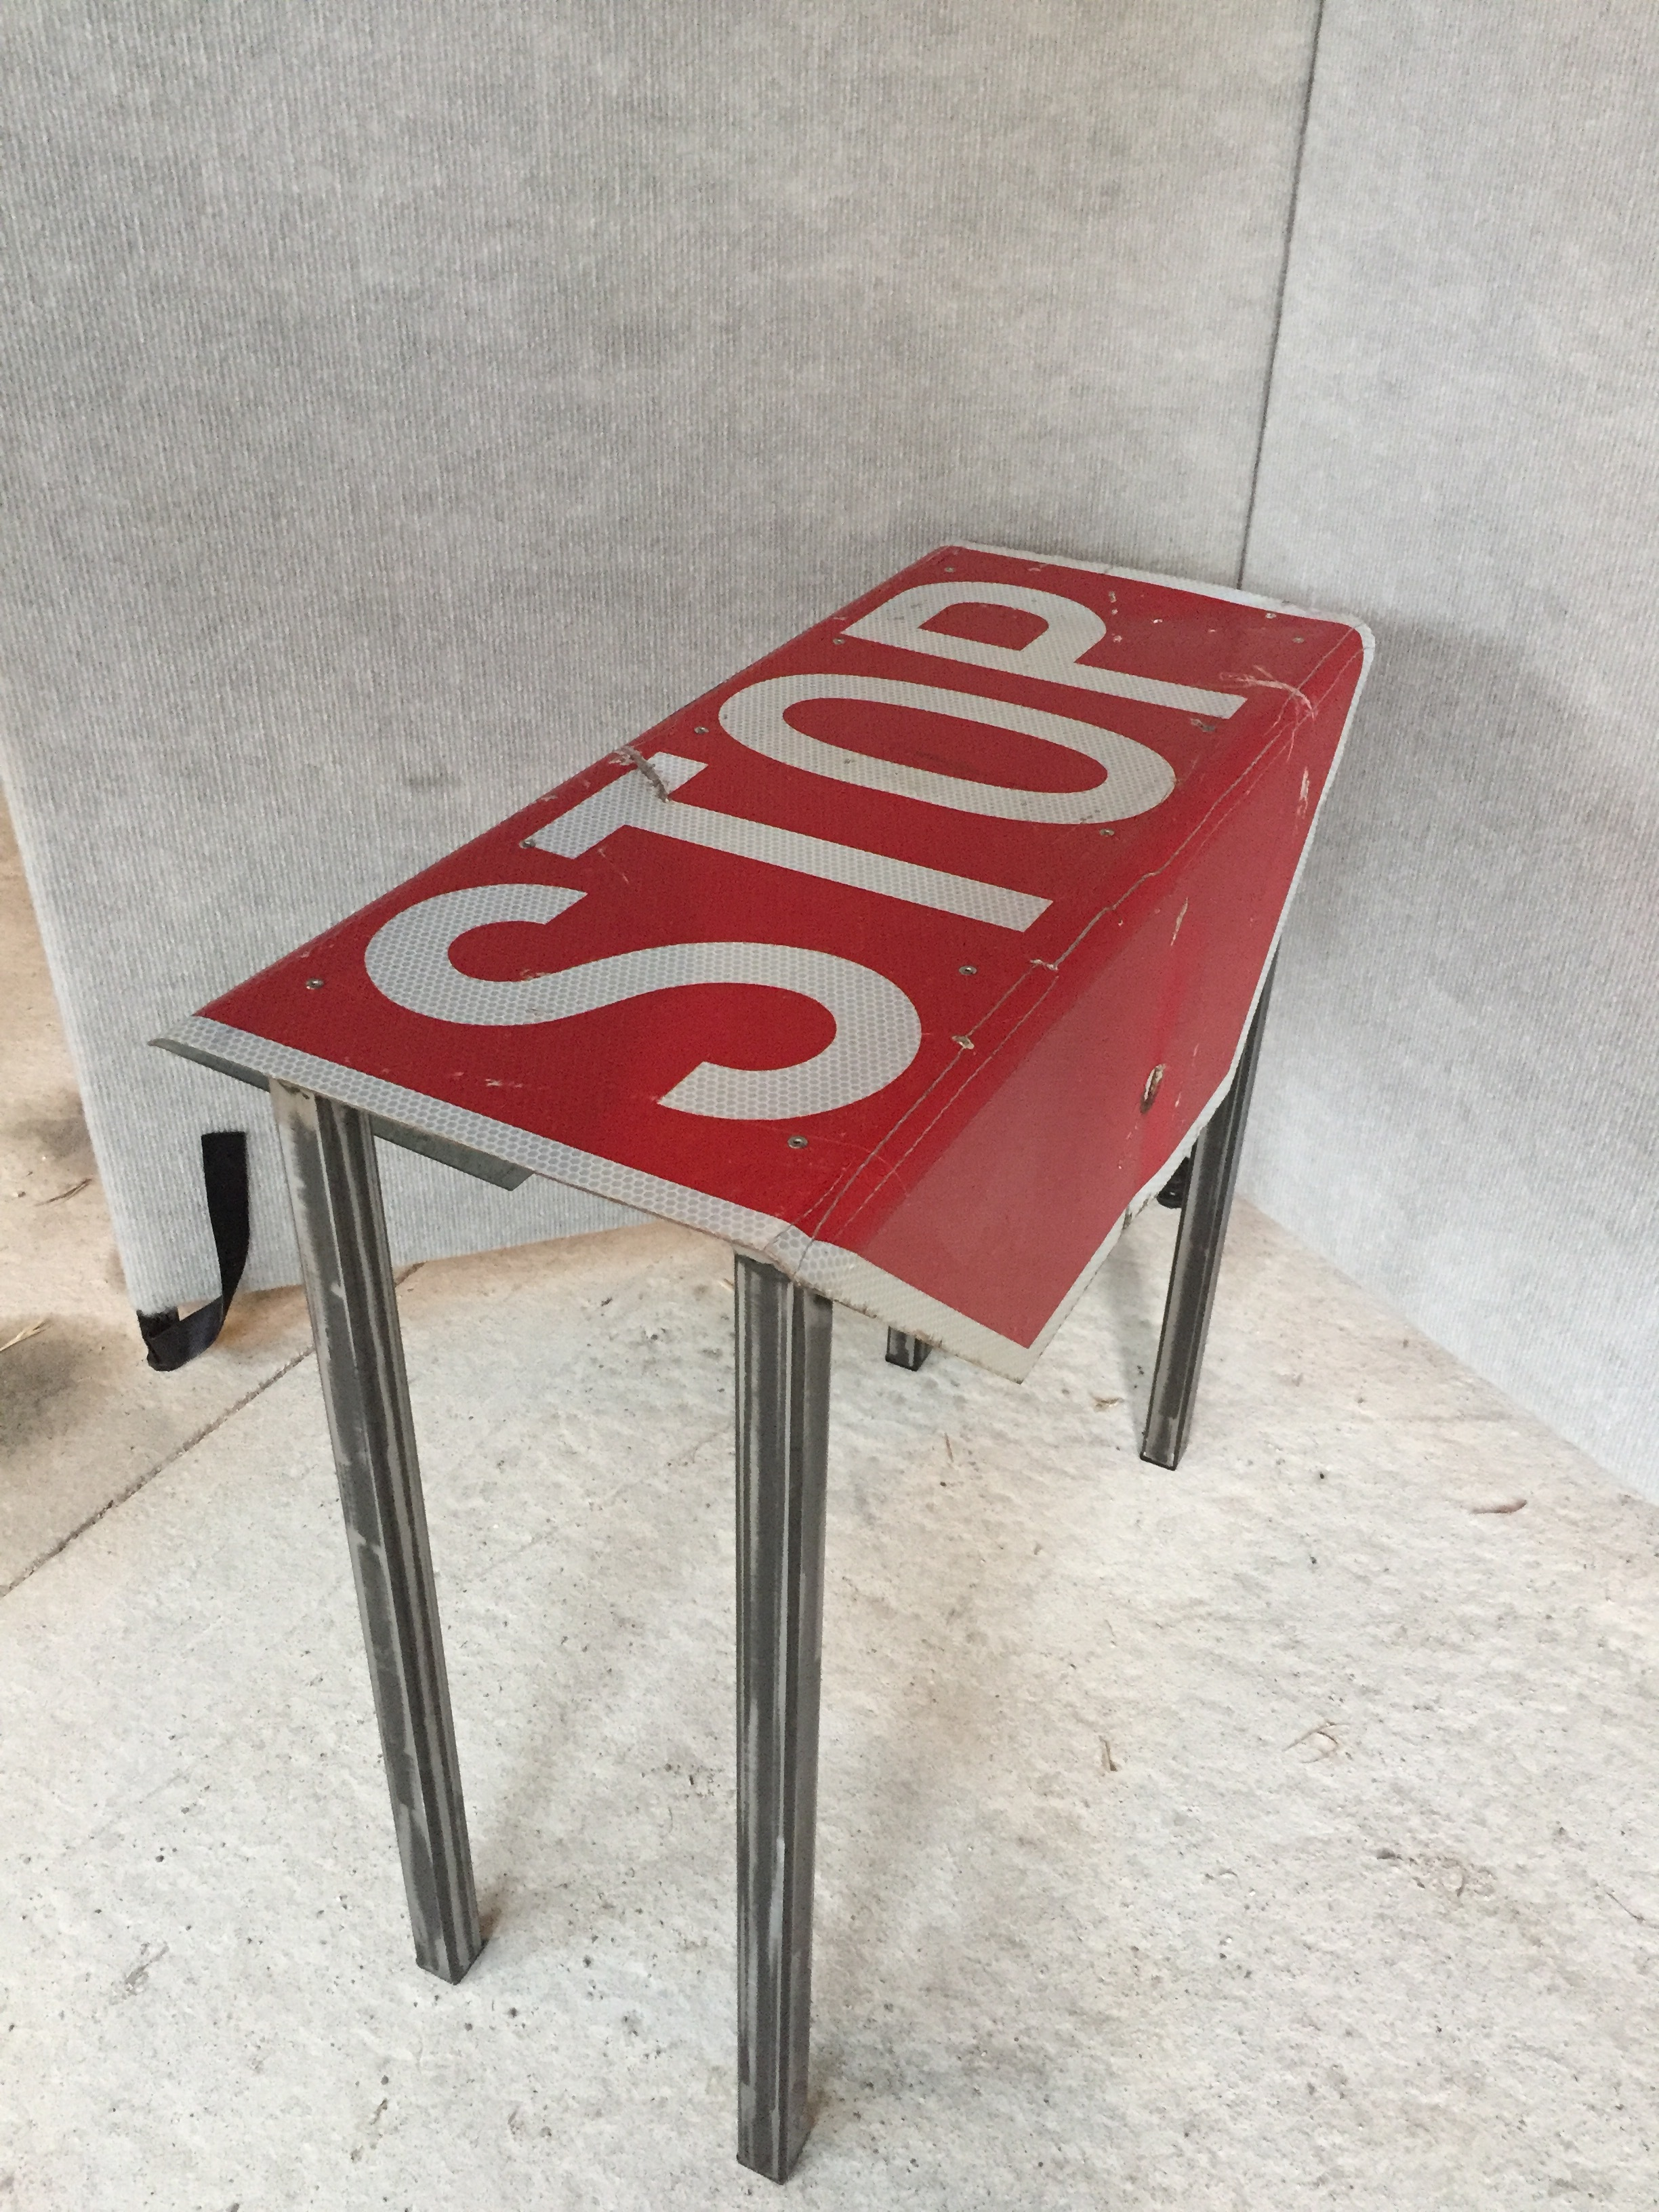 Stop Sign getting a second life as a side table.